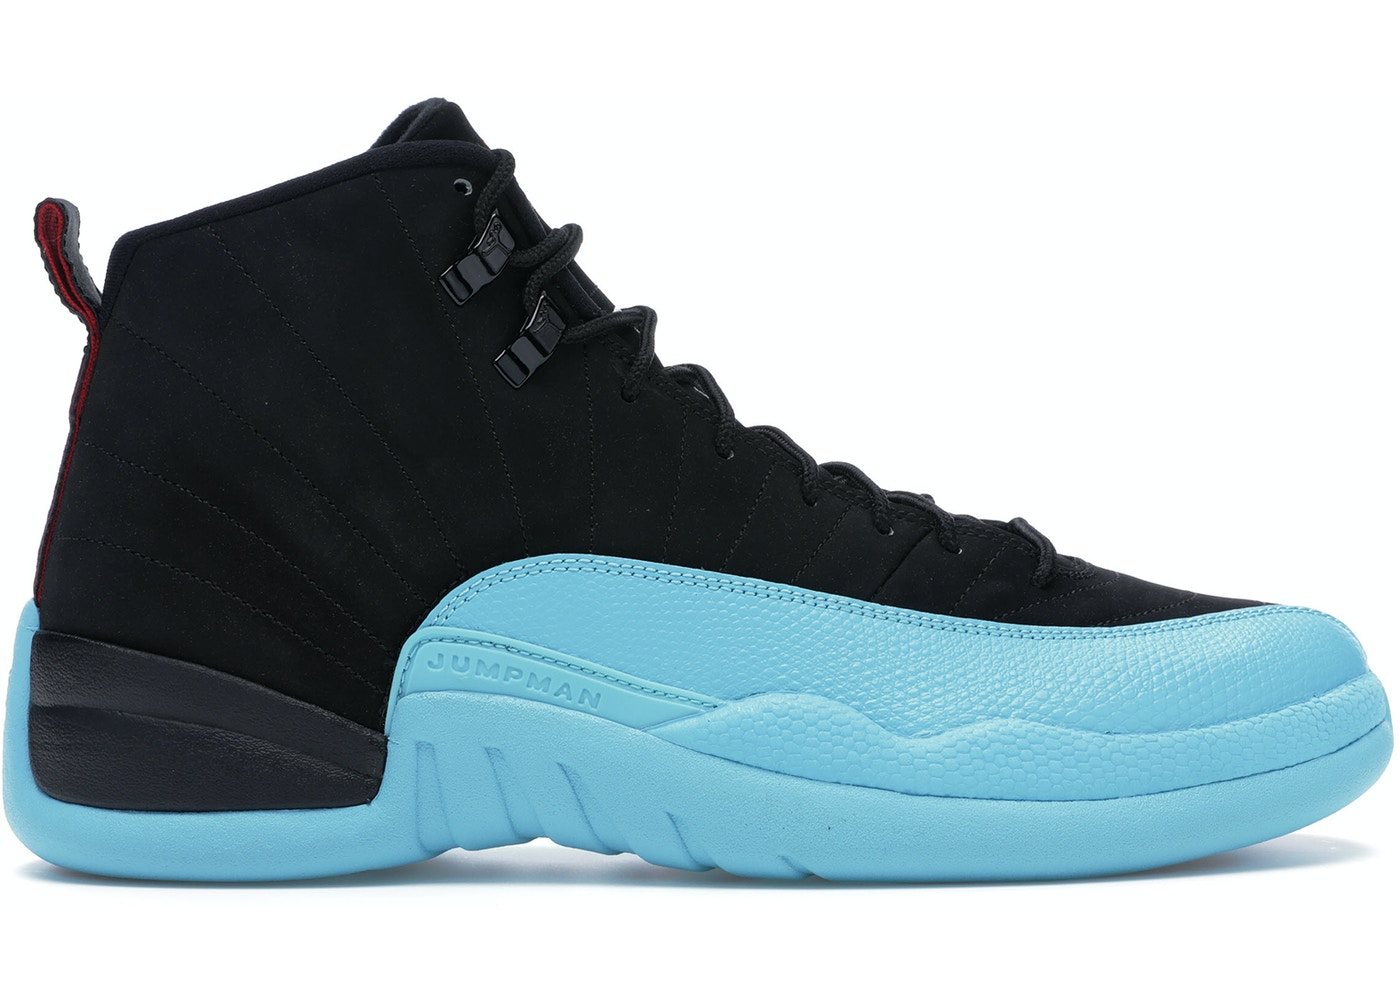 reputable site 94c0a c1914 Jordan 12 Retro Gamma Blue - 130690-027